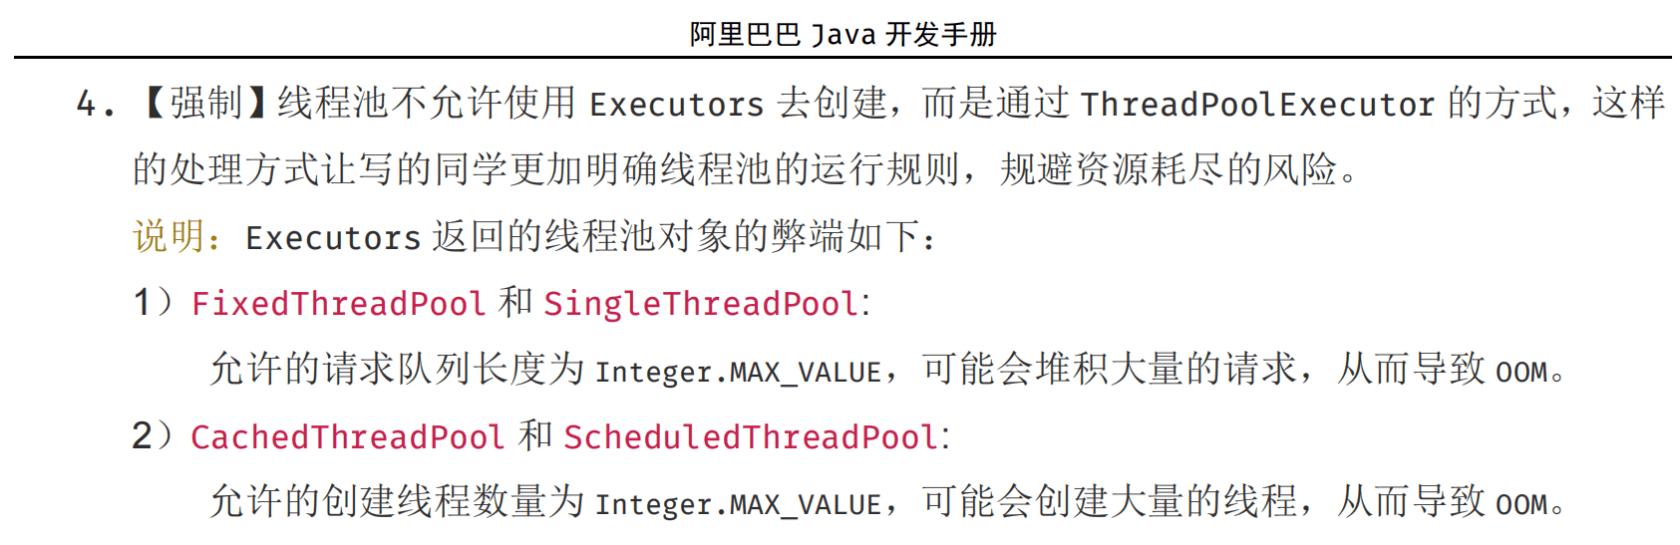 Analysis of Java interview questions